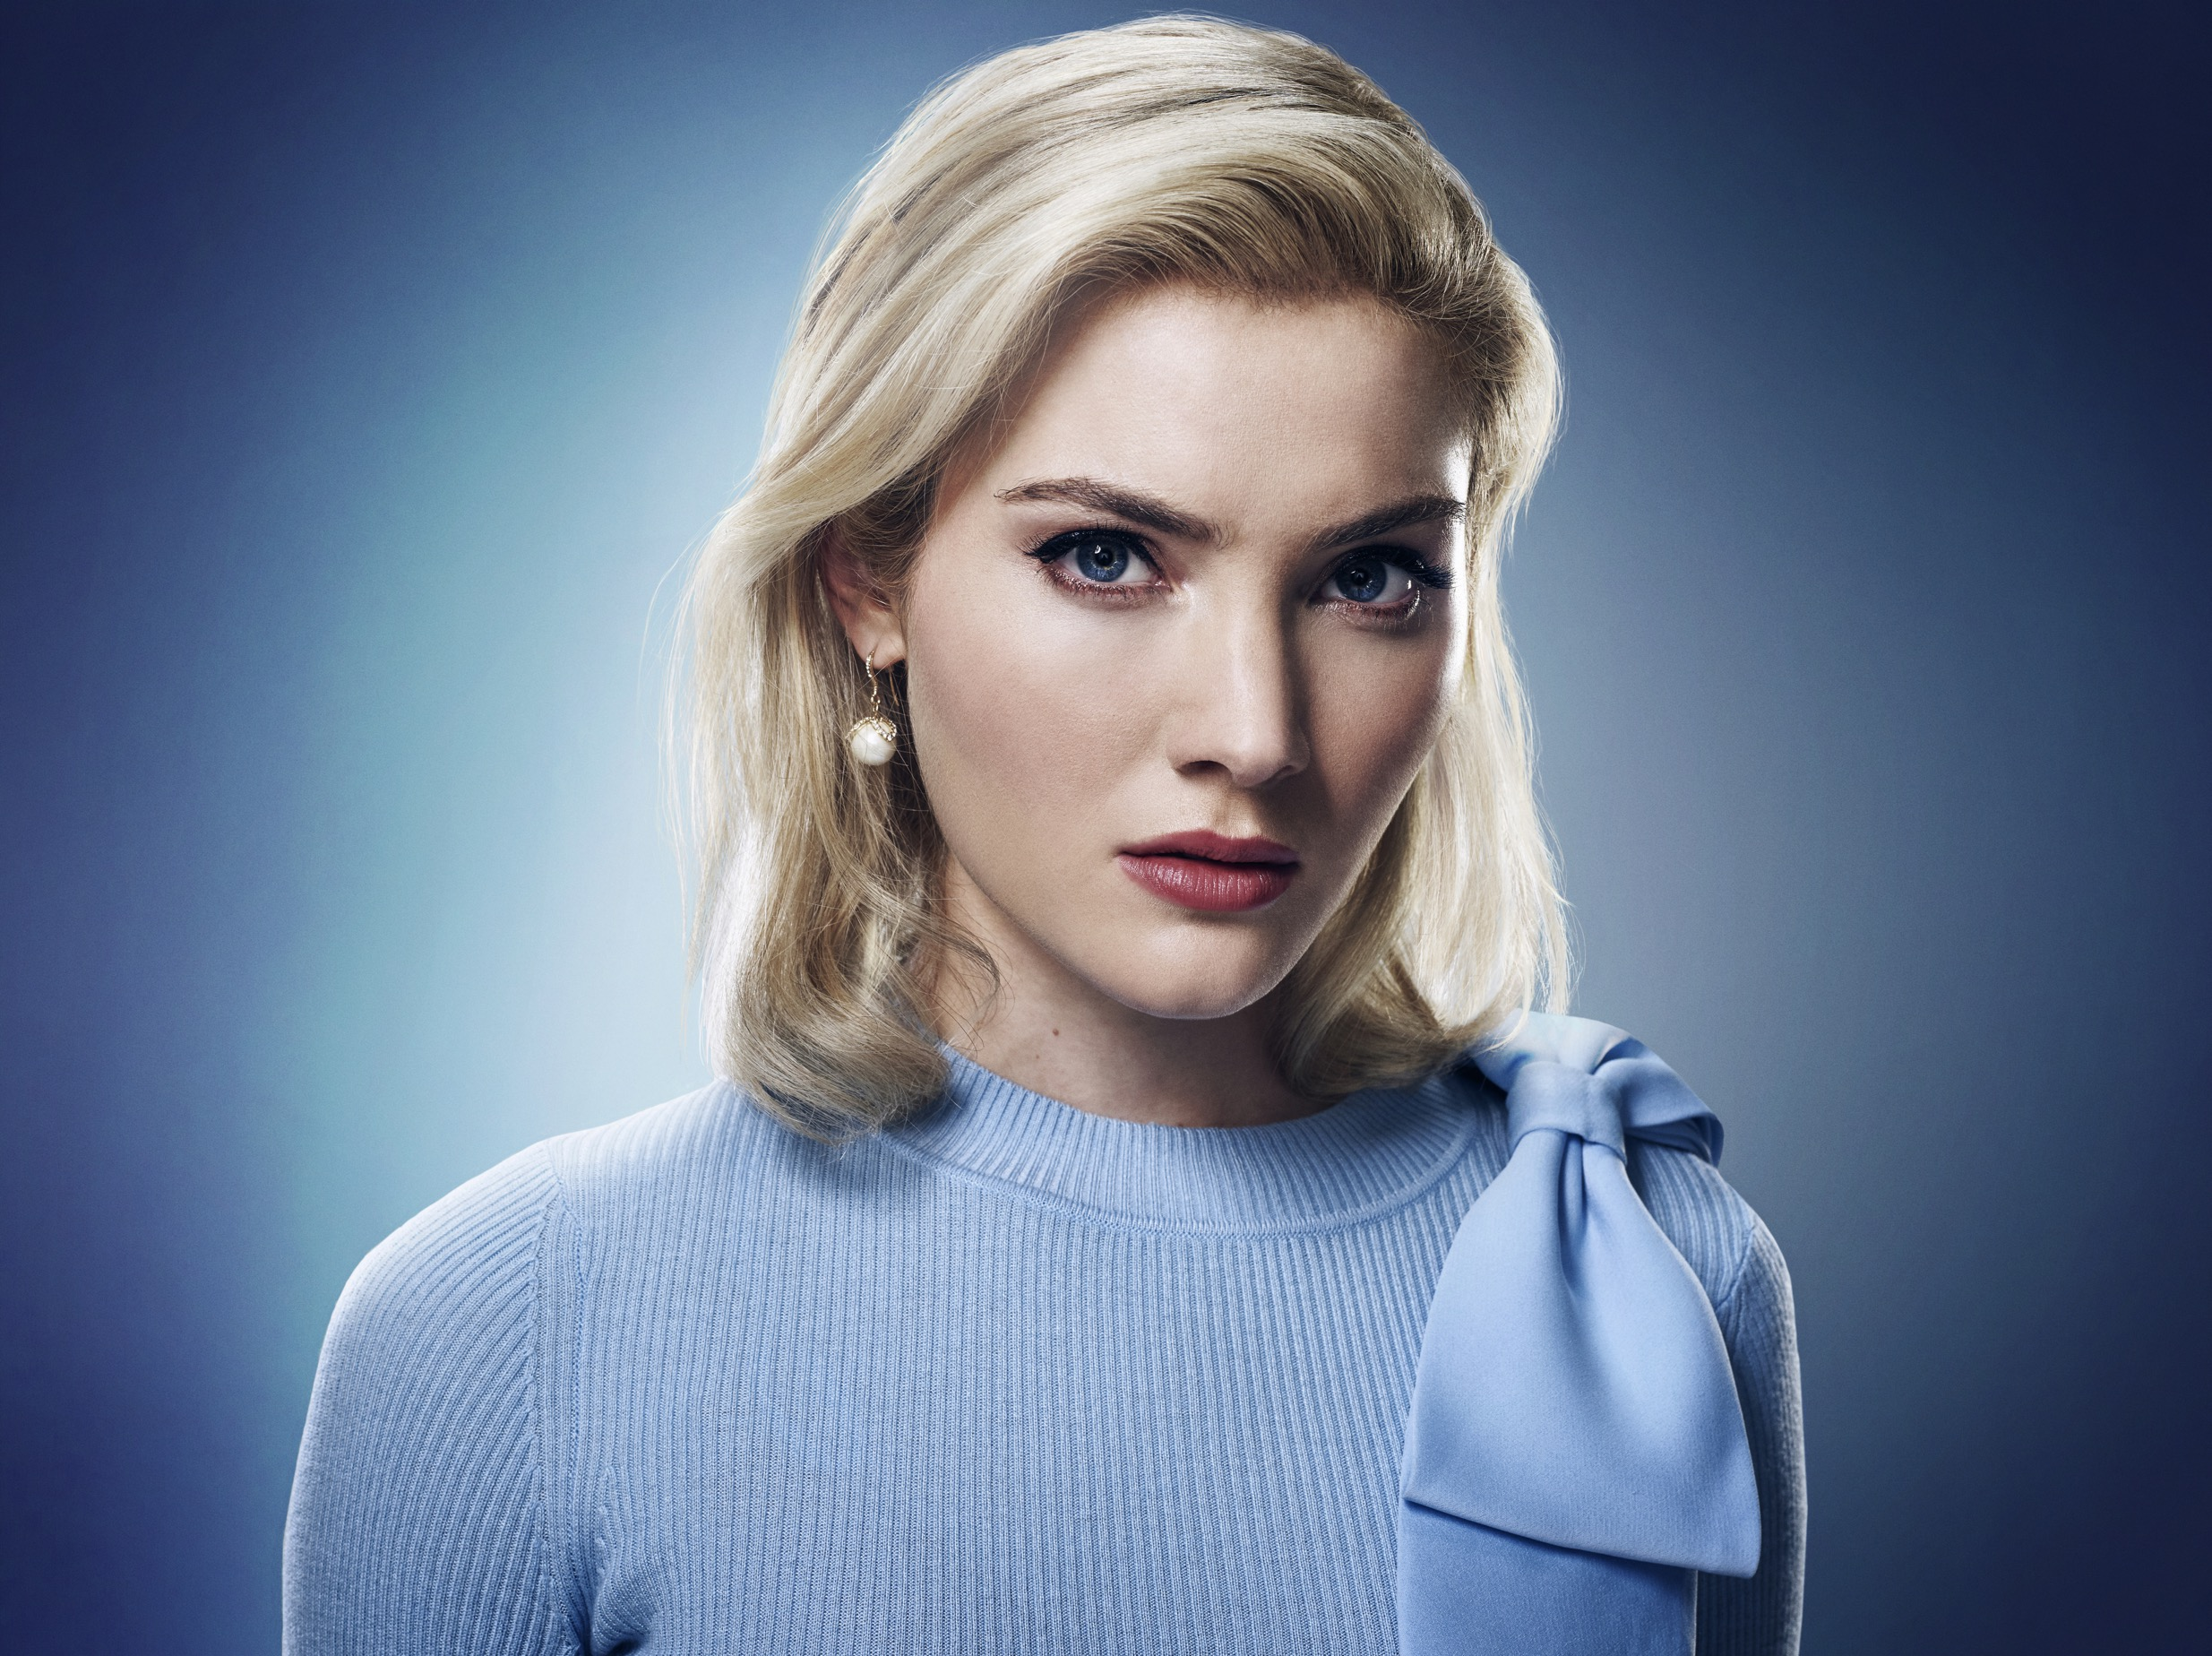 THE GIFTED:  Skyler Samuels as Esmé Frost